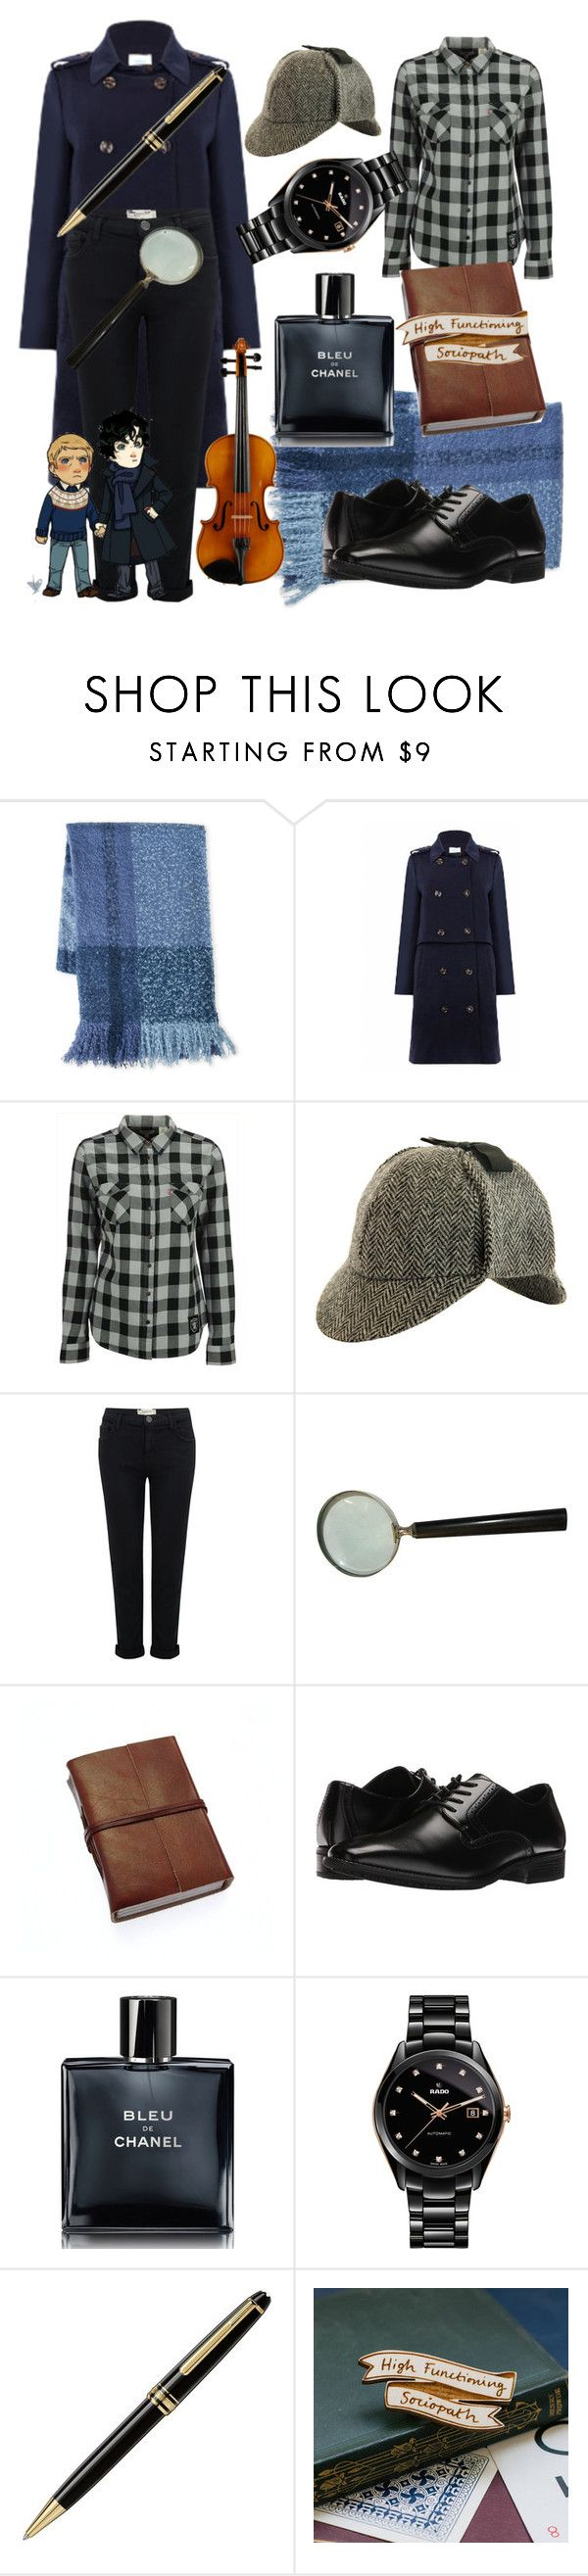 """""""Sherlock Holmes look"""" by tensiled ❤ liked on Polyvore featuring C-LECTIVE, Jovonna, Levi's, Current/Elliott, Stacy Adams, Chanel, Rado, Montblanc and Kate Rowland"""